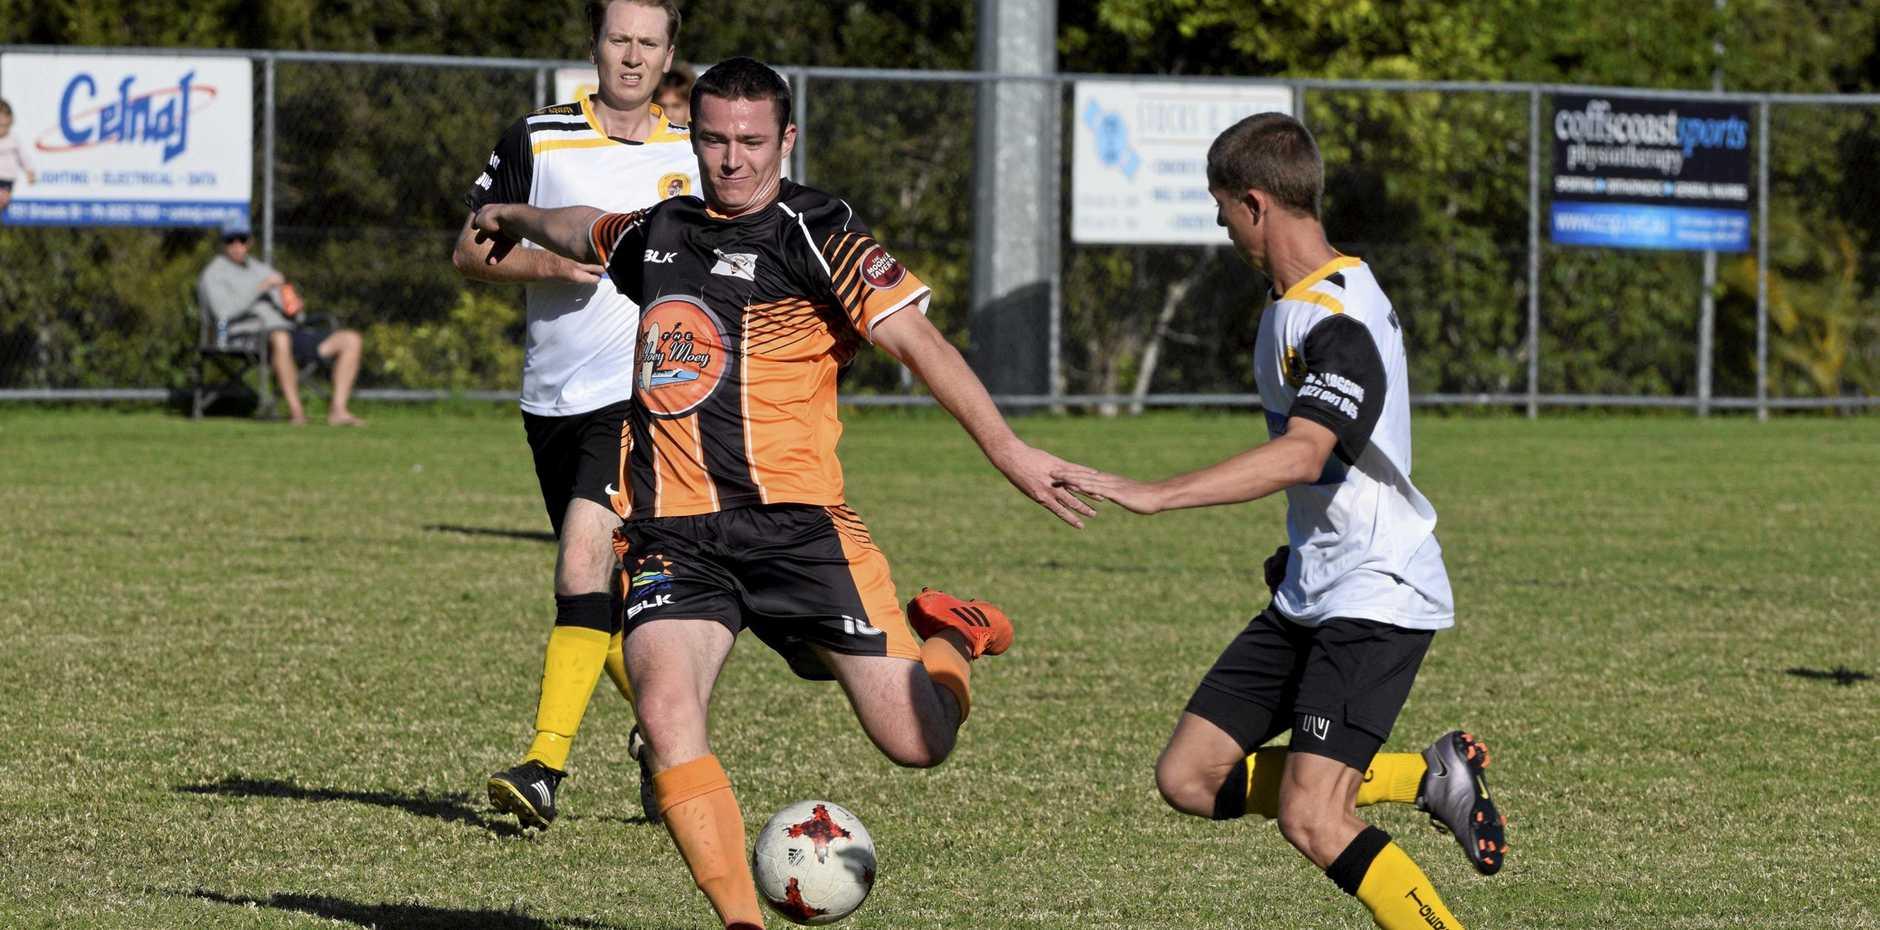 THREE POINTS ... JUST: The Coffs Coast Tigers edged out the Westlawn Tigers in the Men's Premier League match played at Polwarth Drive.